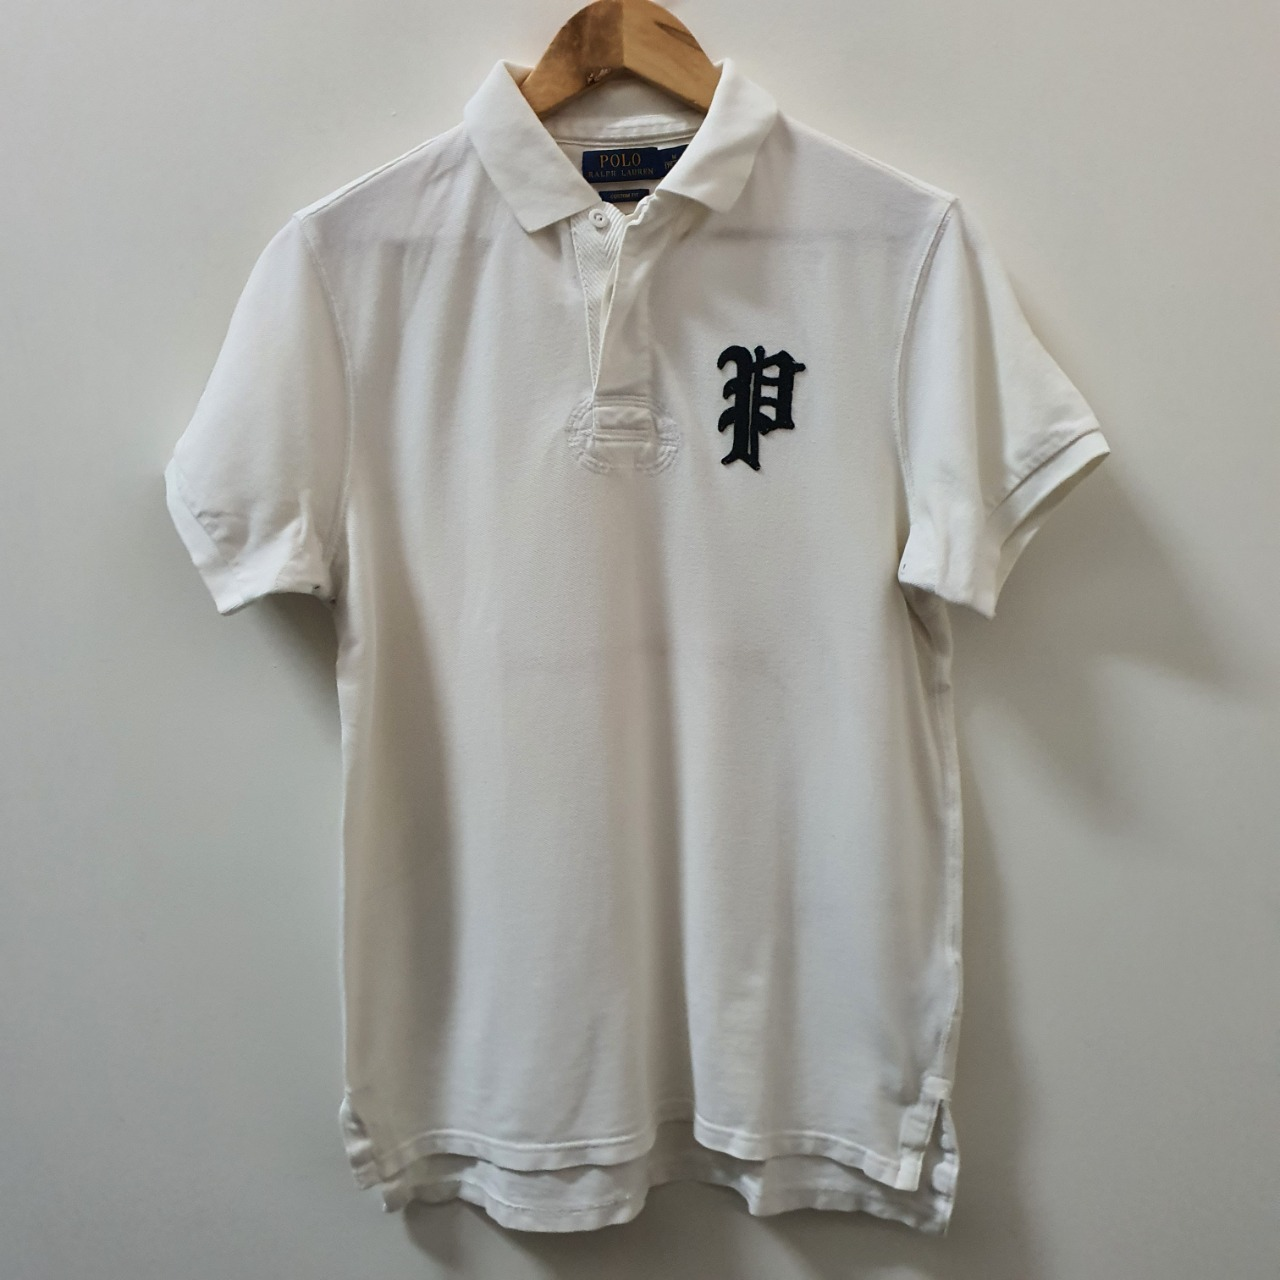 Men's 'Polo Ralph Lauren' Polo Shirt - Size M